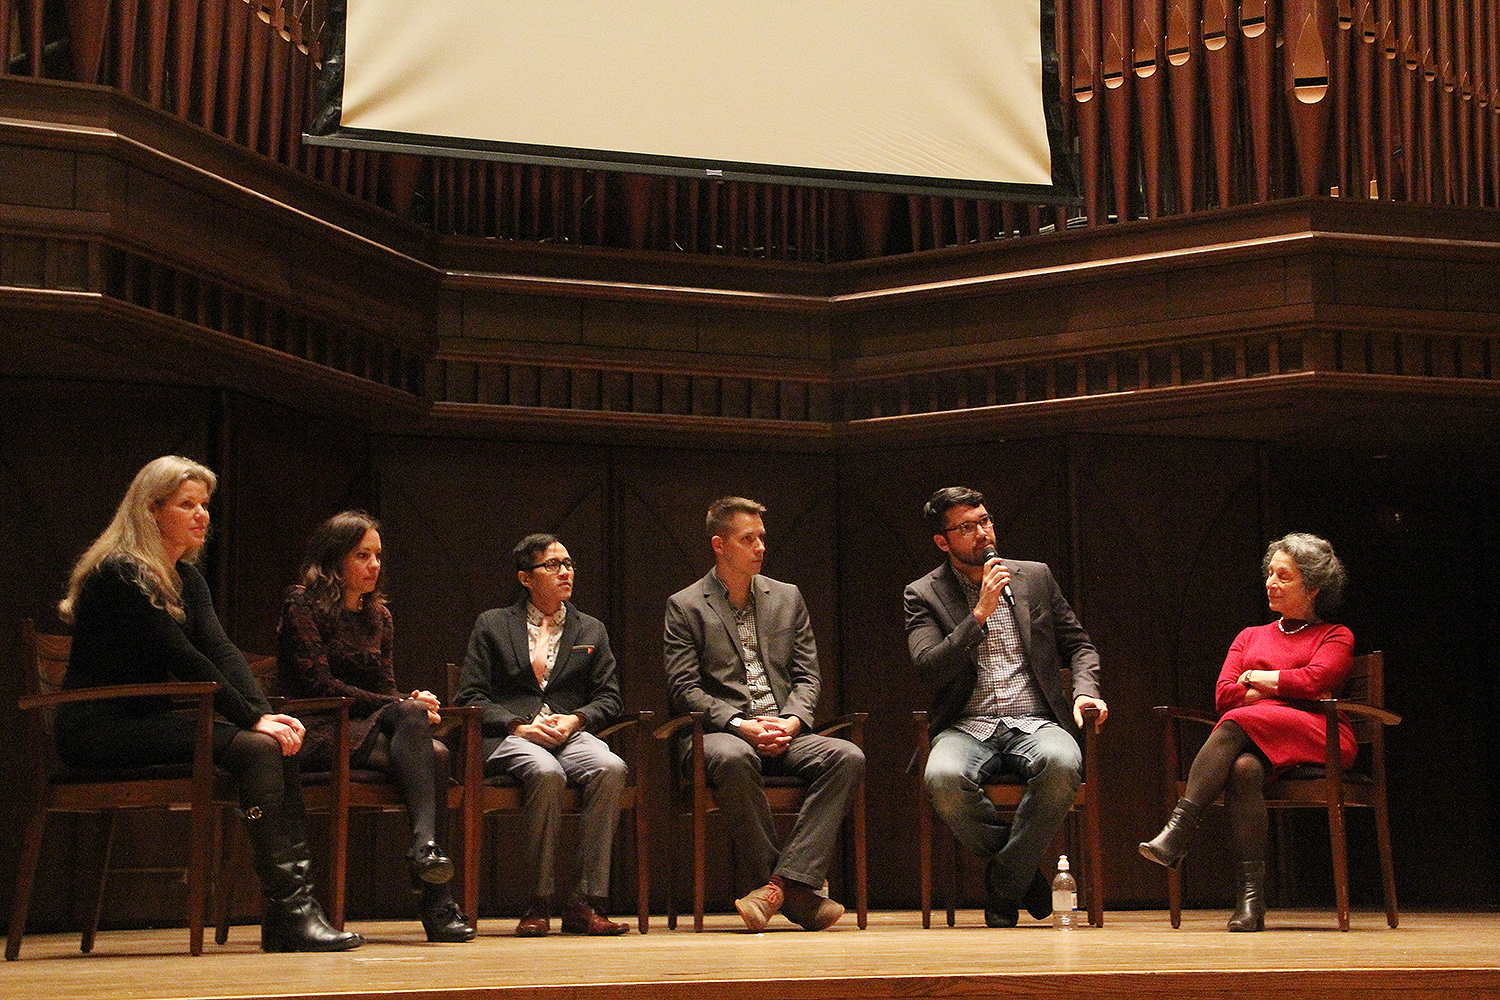 During Wesleyan Thinks Big, six faculty delivered 10-minute inspirational lectures on topics they are personally passionate about.The student-run event took place Dec. 10 in Memorial Chapel.